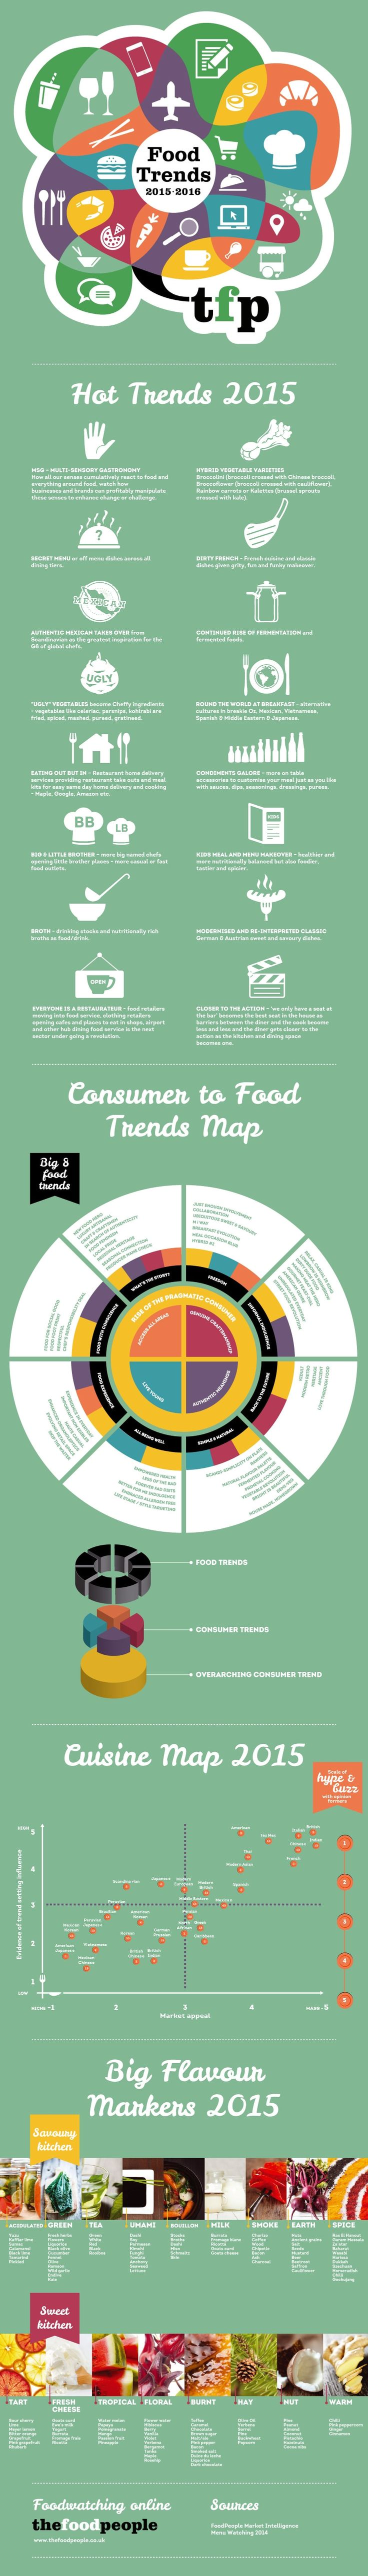 A brilliant and very detailed 2015 food trends infographic by @finedininglover :)